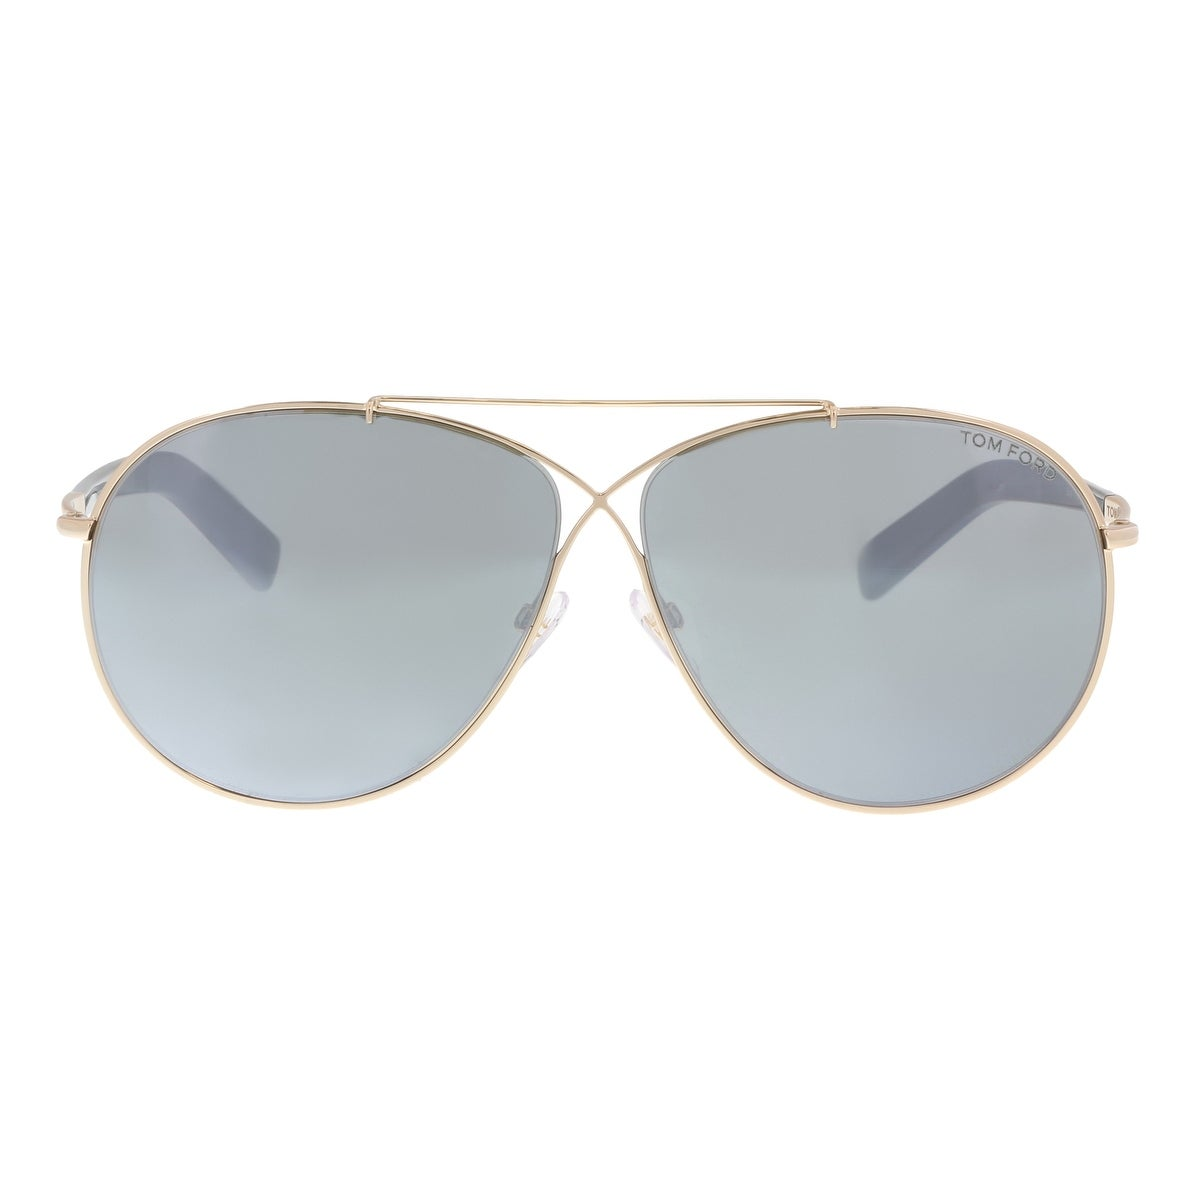 d863924a0cdd Shop Tom Ford FT0374 S 28Q Eva Gold Aviator Sunglasses - 61-10-140 - Free  Shipping Today - Overstock - 19518828